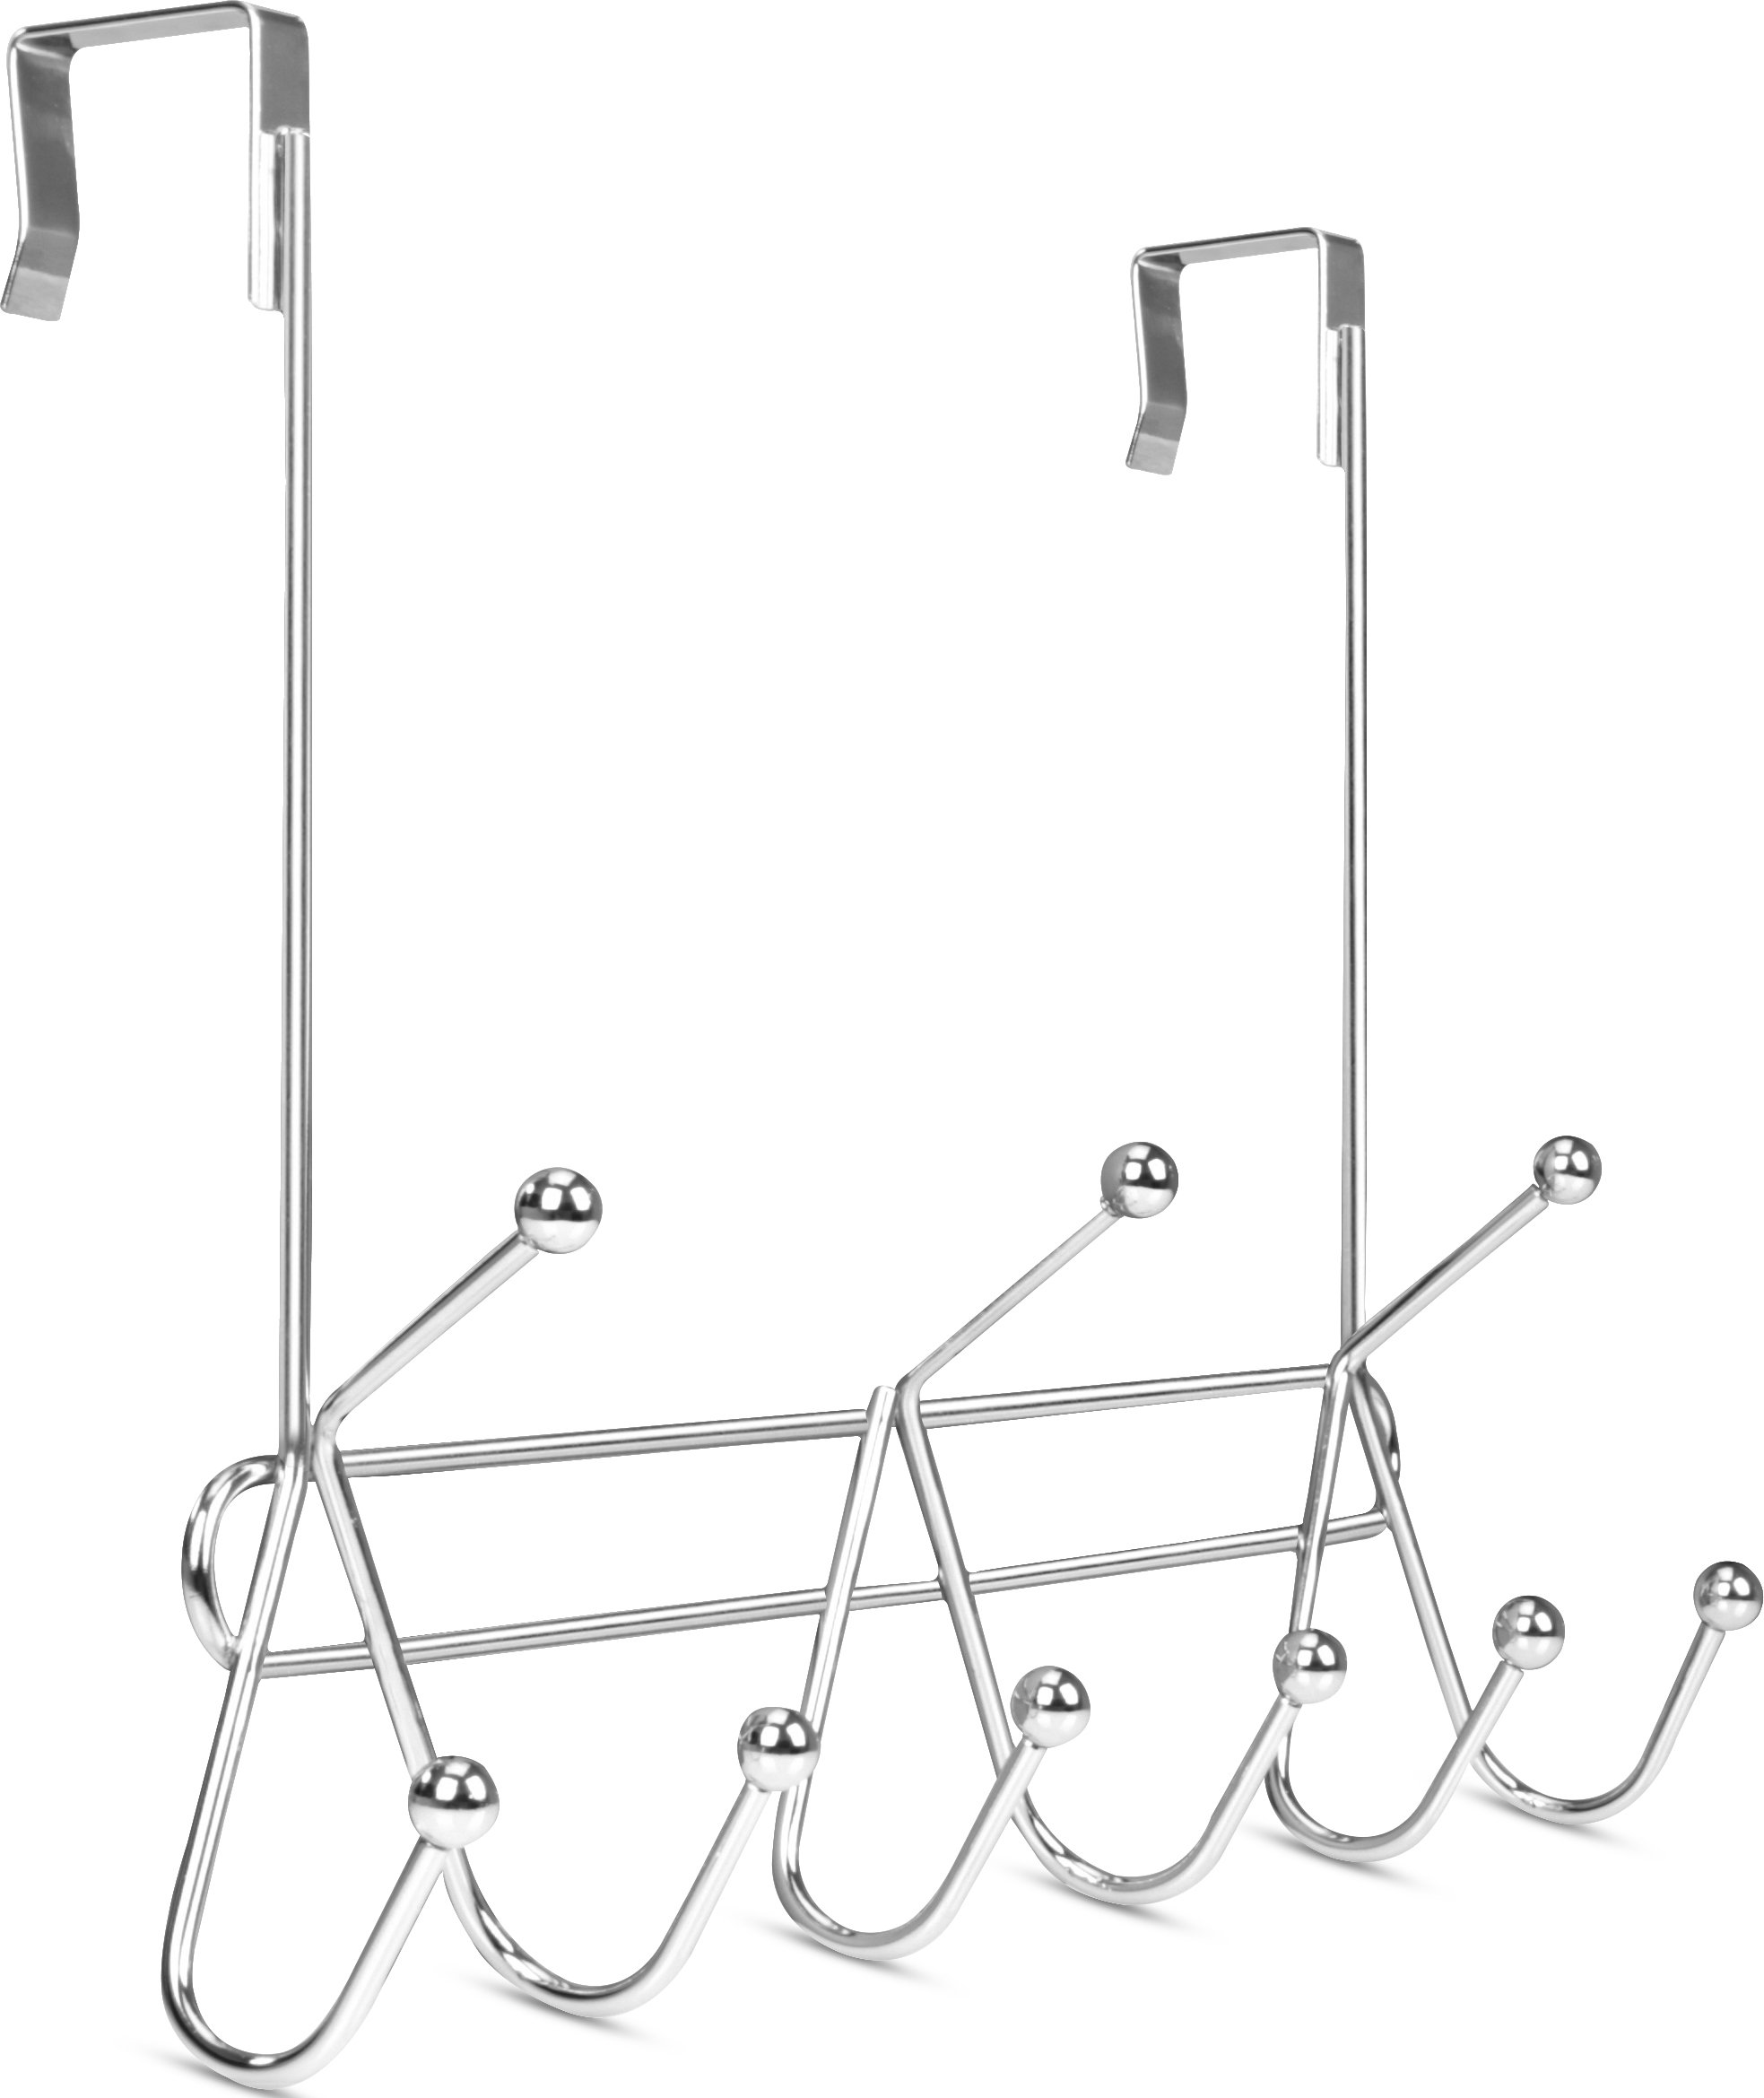 Utopia Home Over The Door Hook Rack Organizer - 9 Hooks - Ideal for Coats, Hats, Robes and Towels - Chrome Finishing